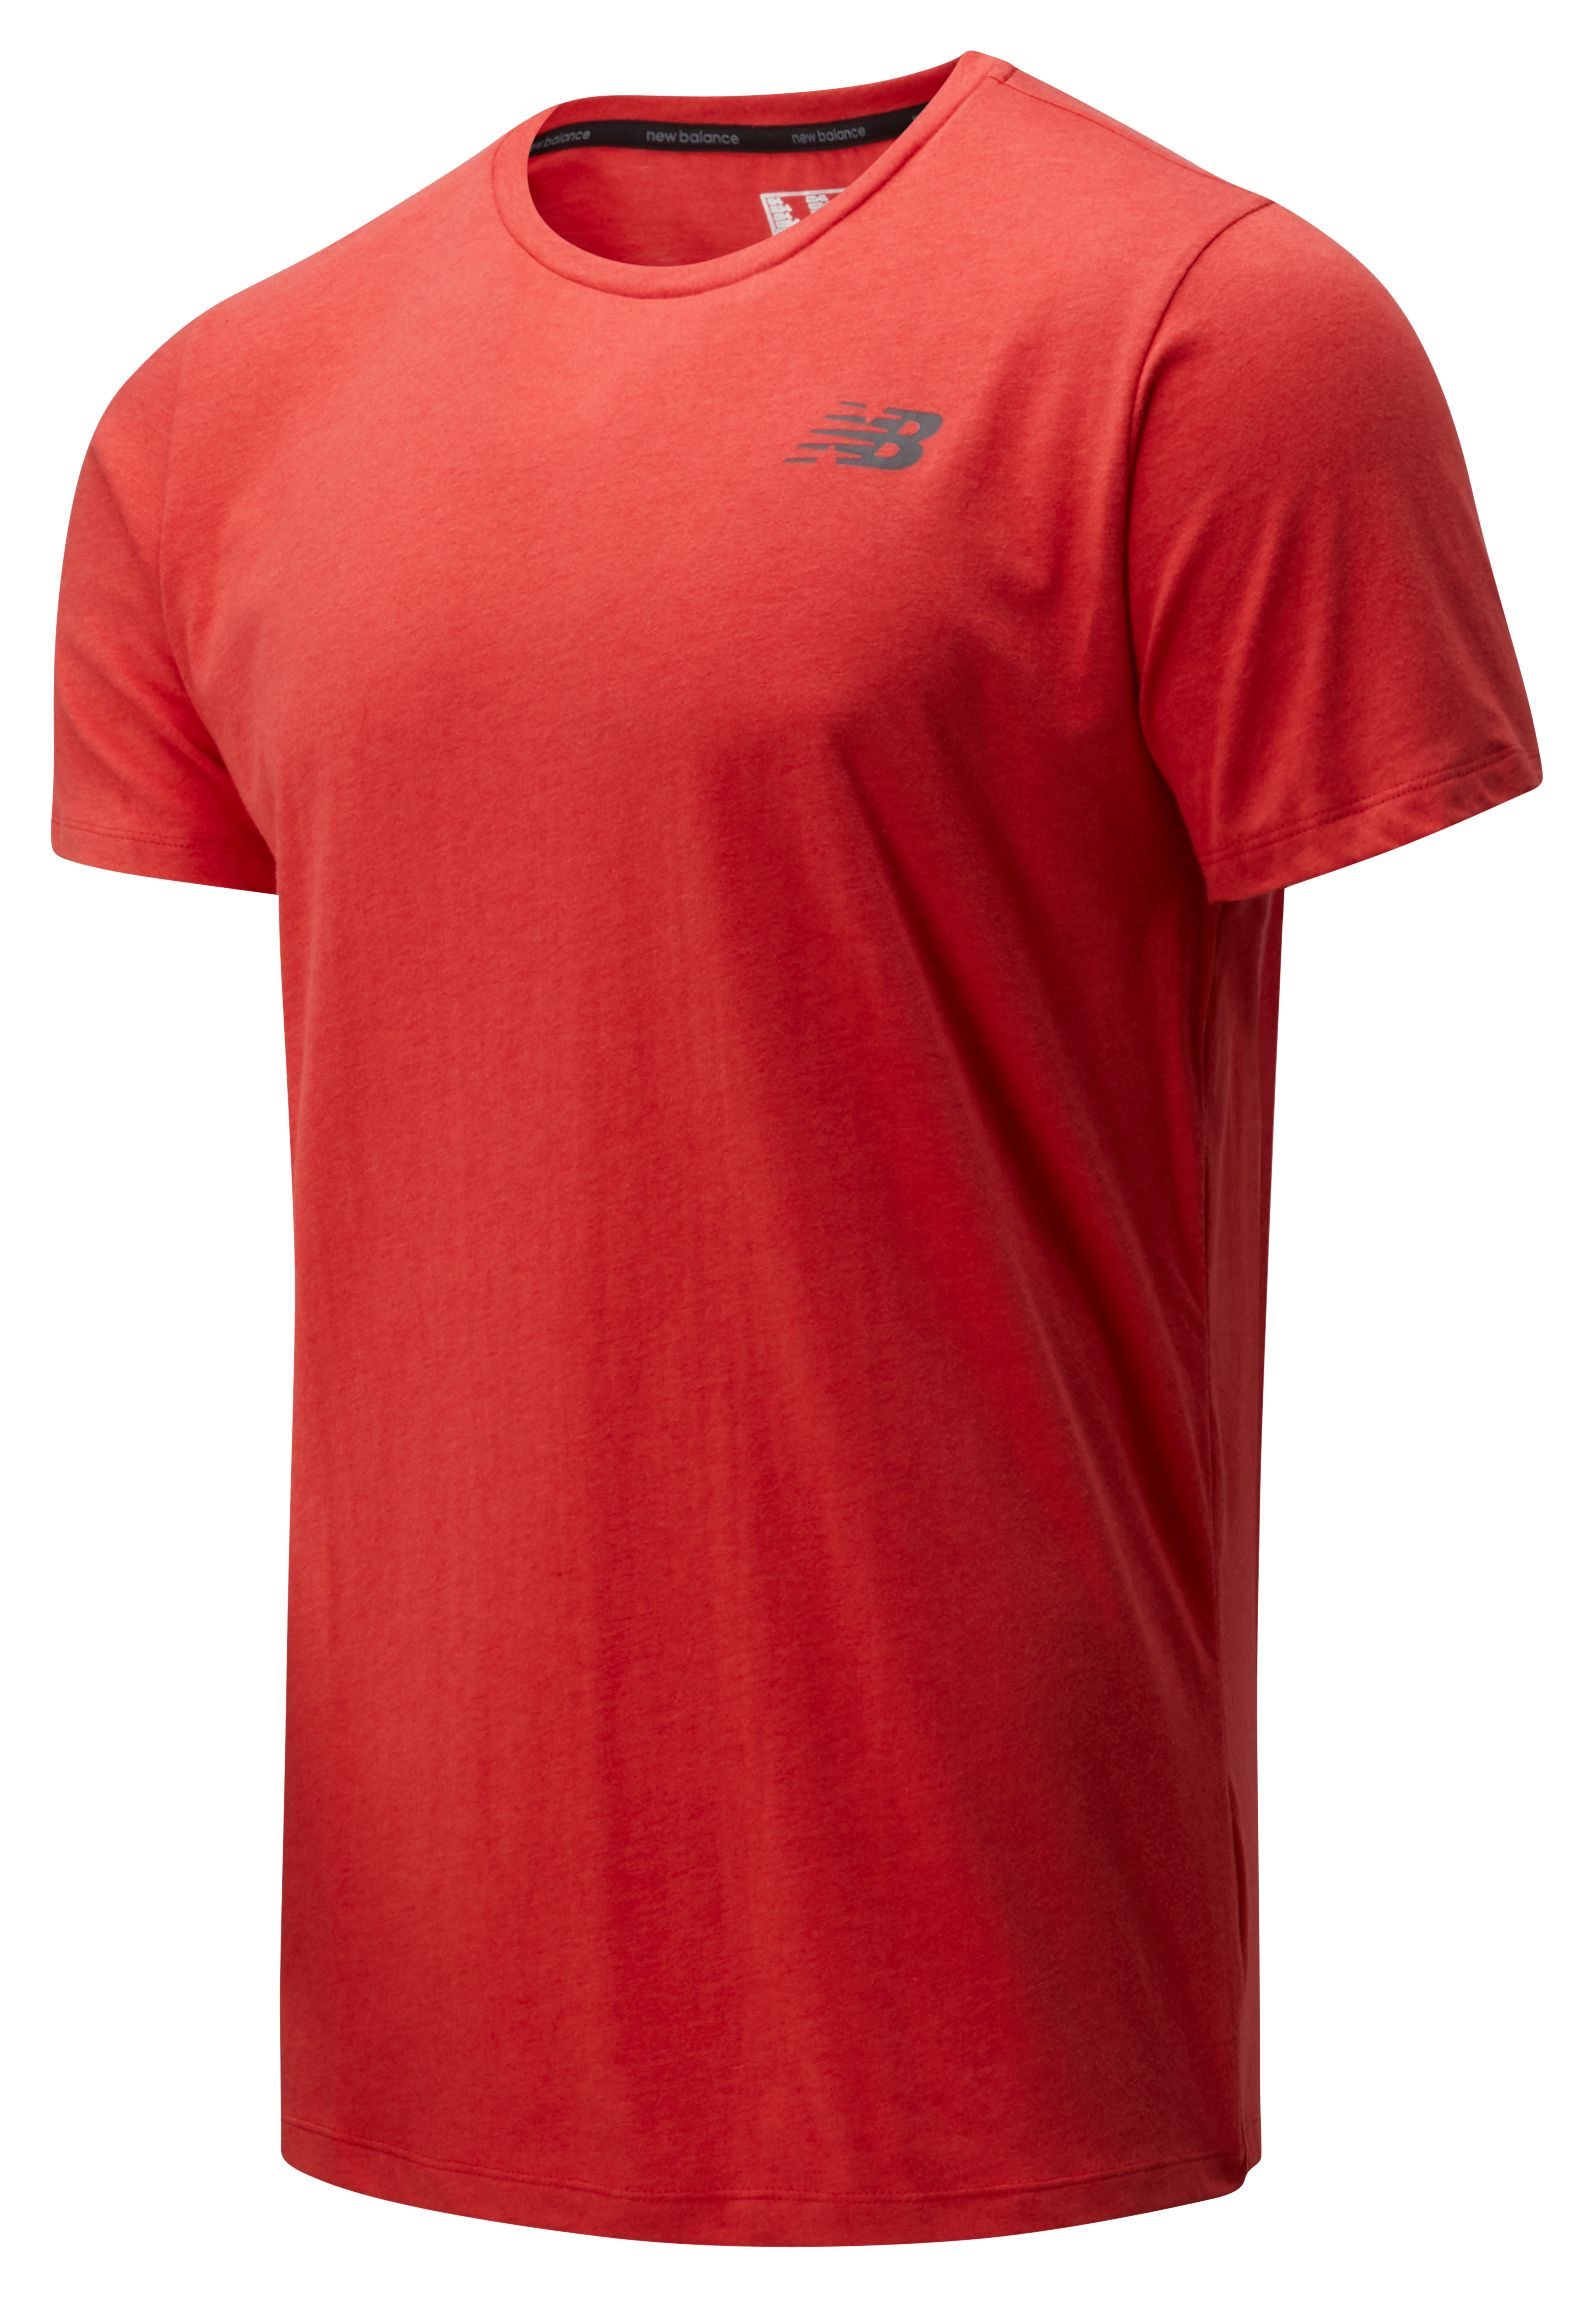 Men's Heathertech Tee